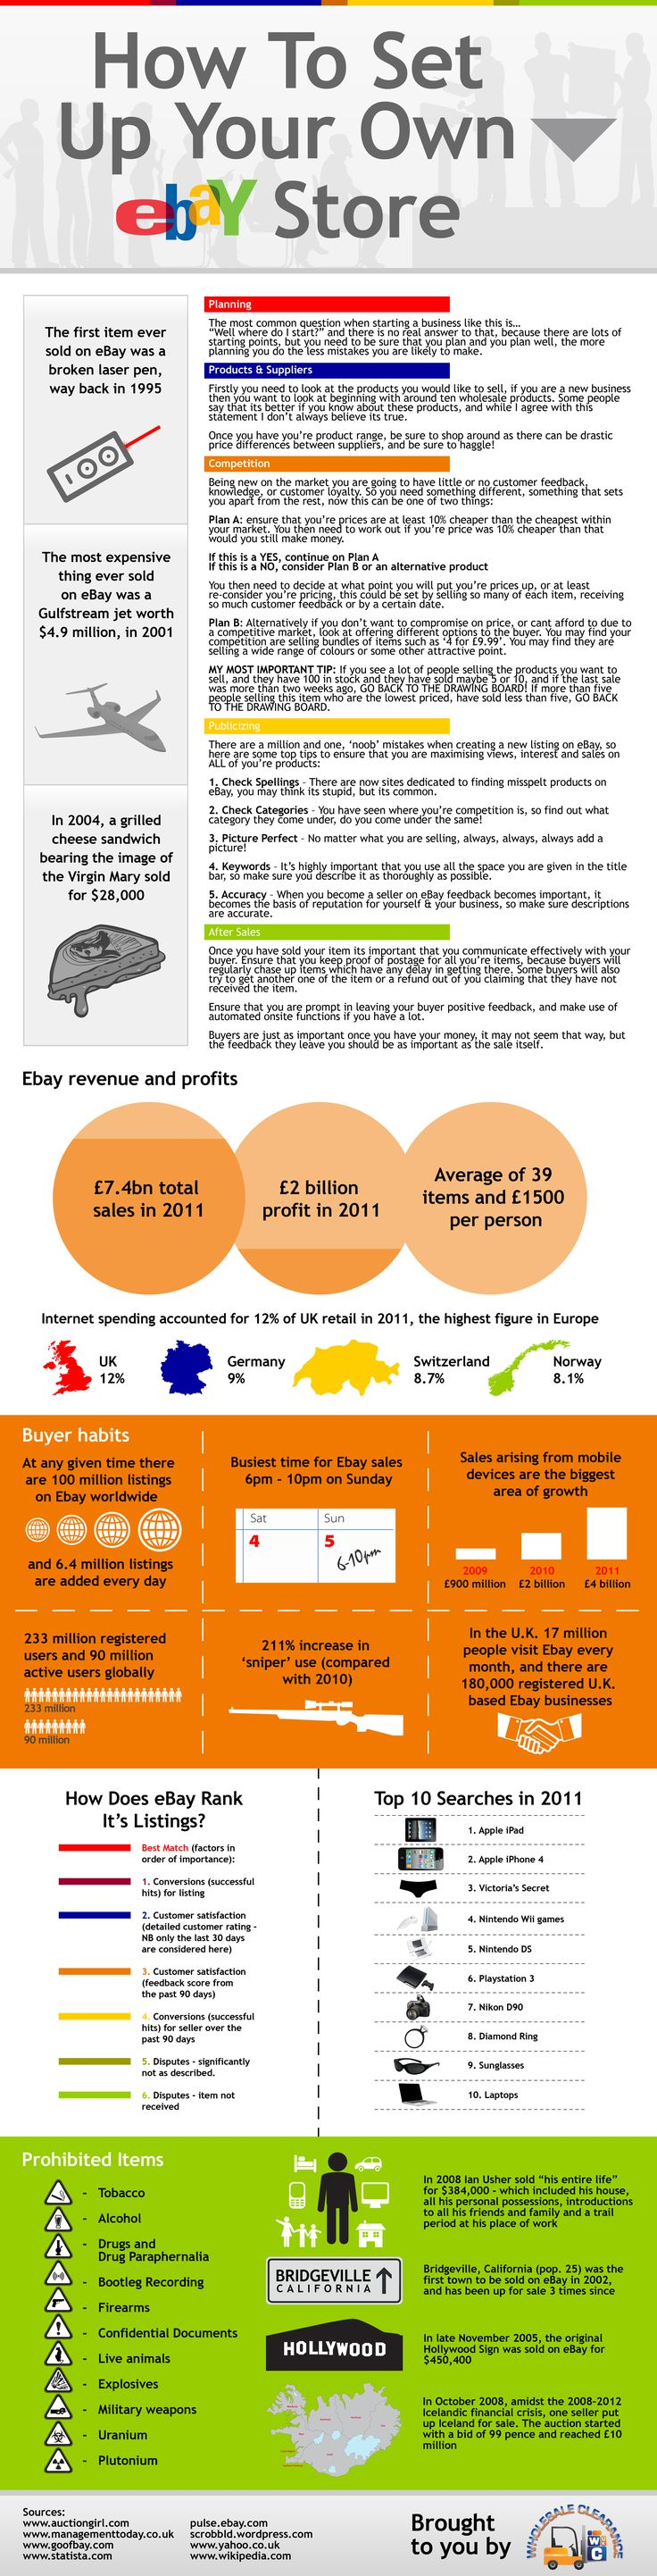 How To Set Up eBay Store Infographic: With the demand for online purchasing growing daily, maybe it's time you looked at selling on eBay? #ebay #howto